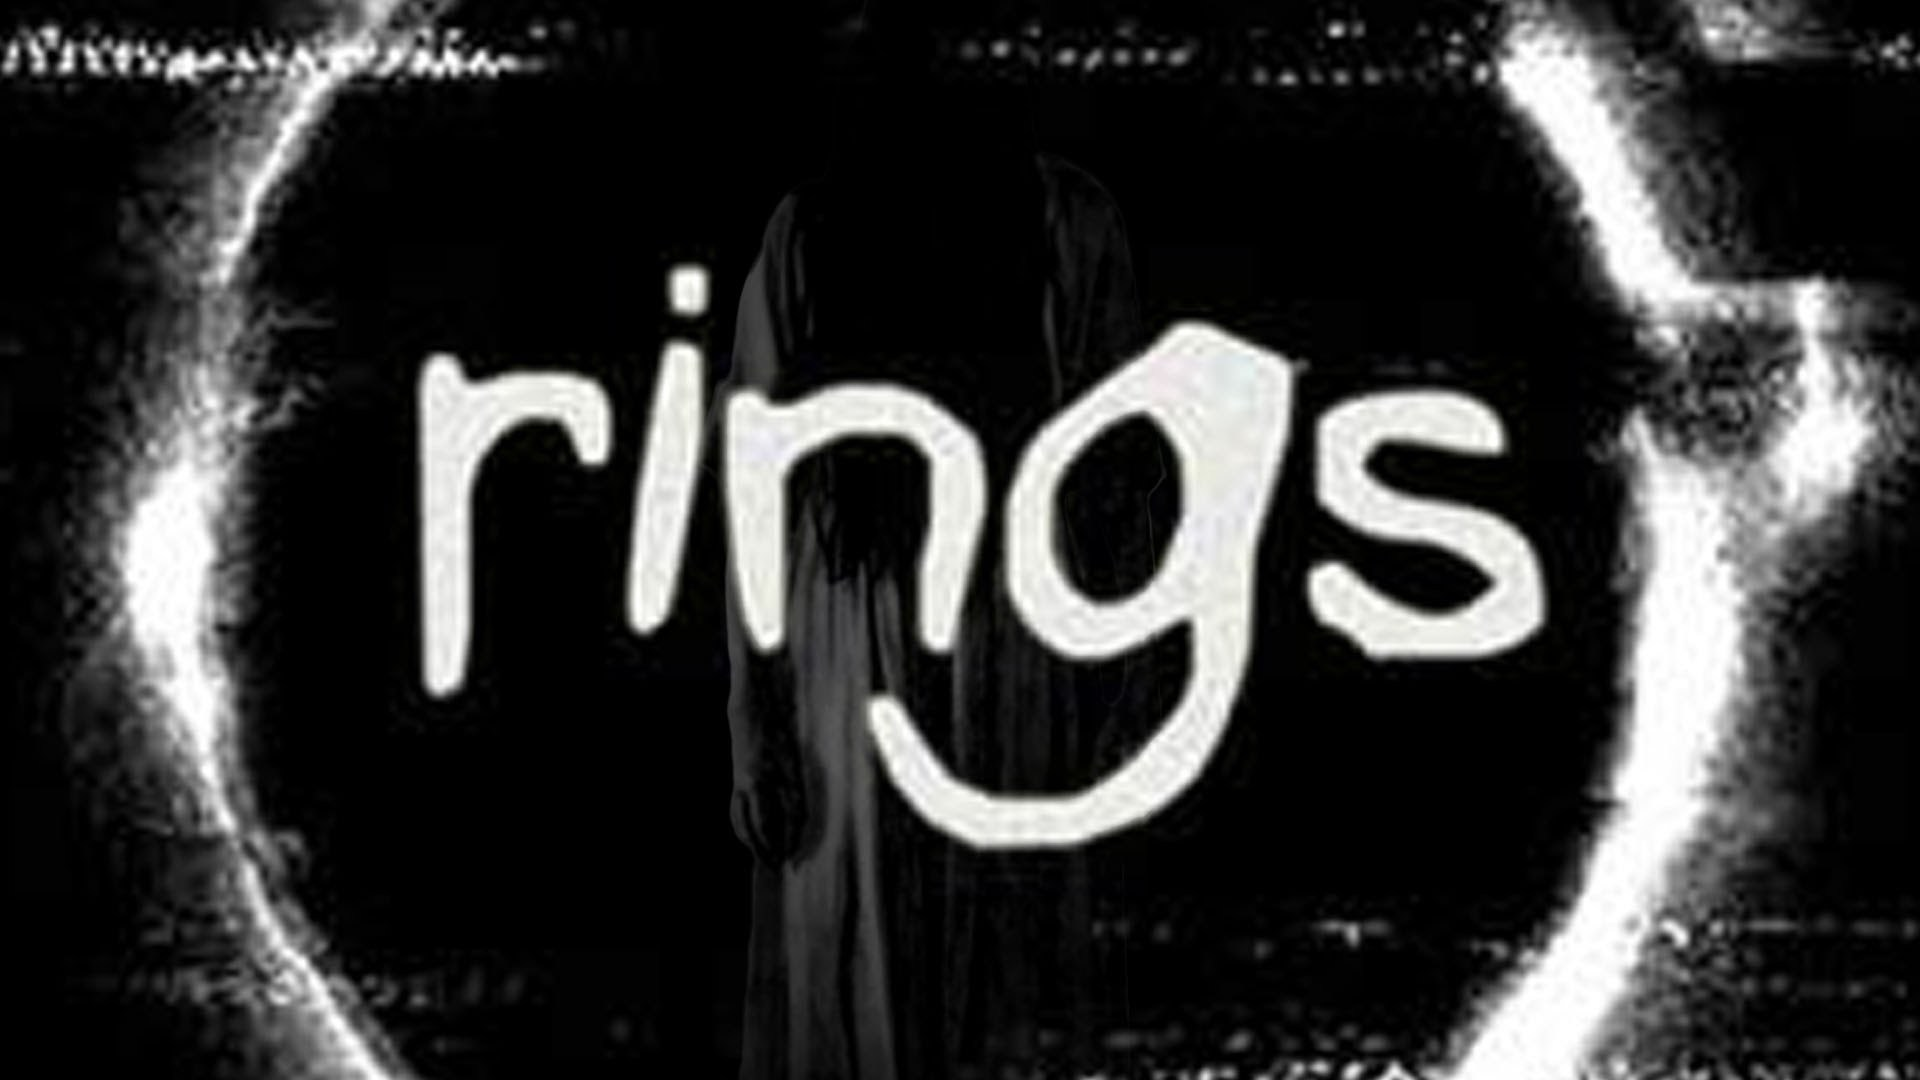 Rings Backgrounds